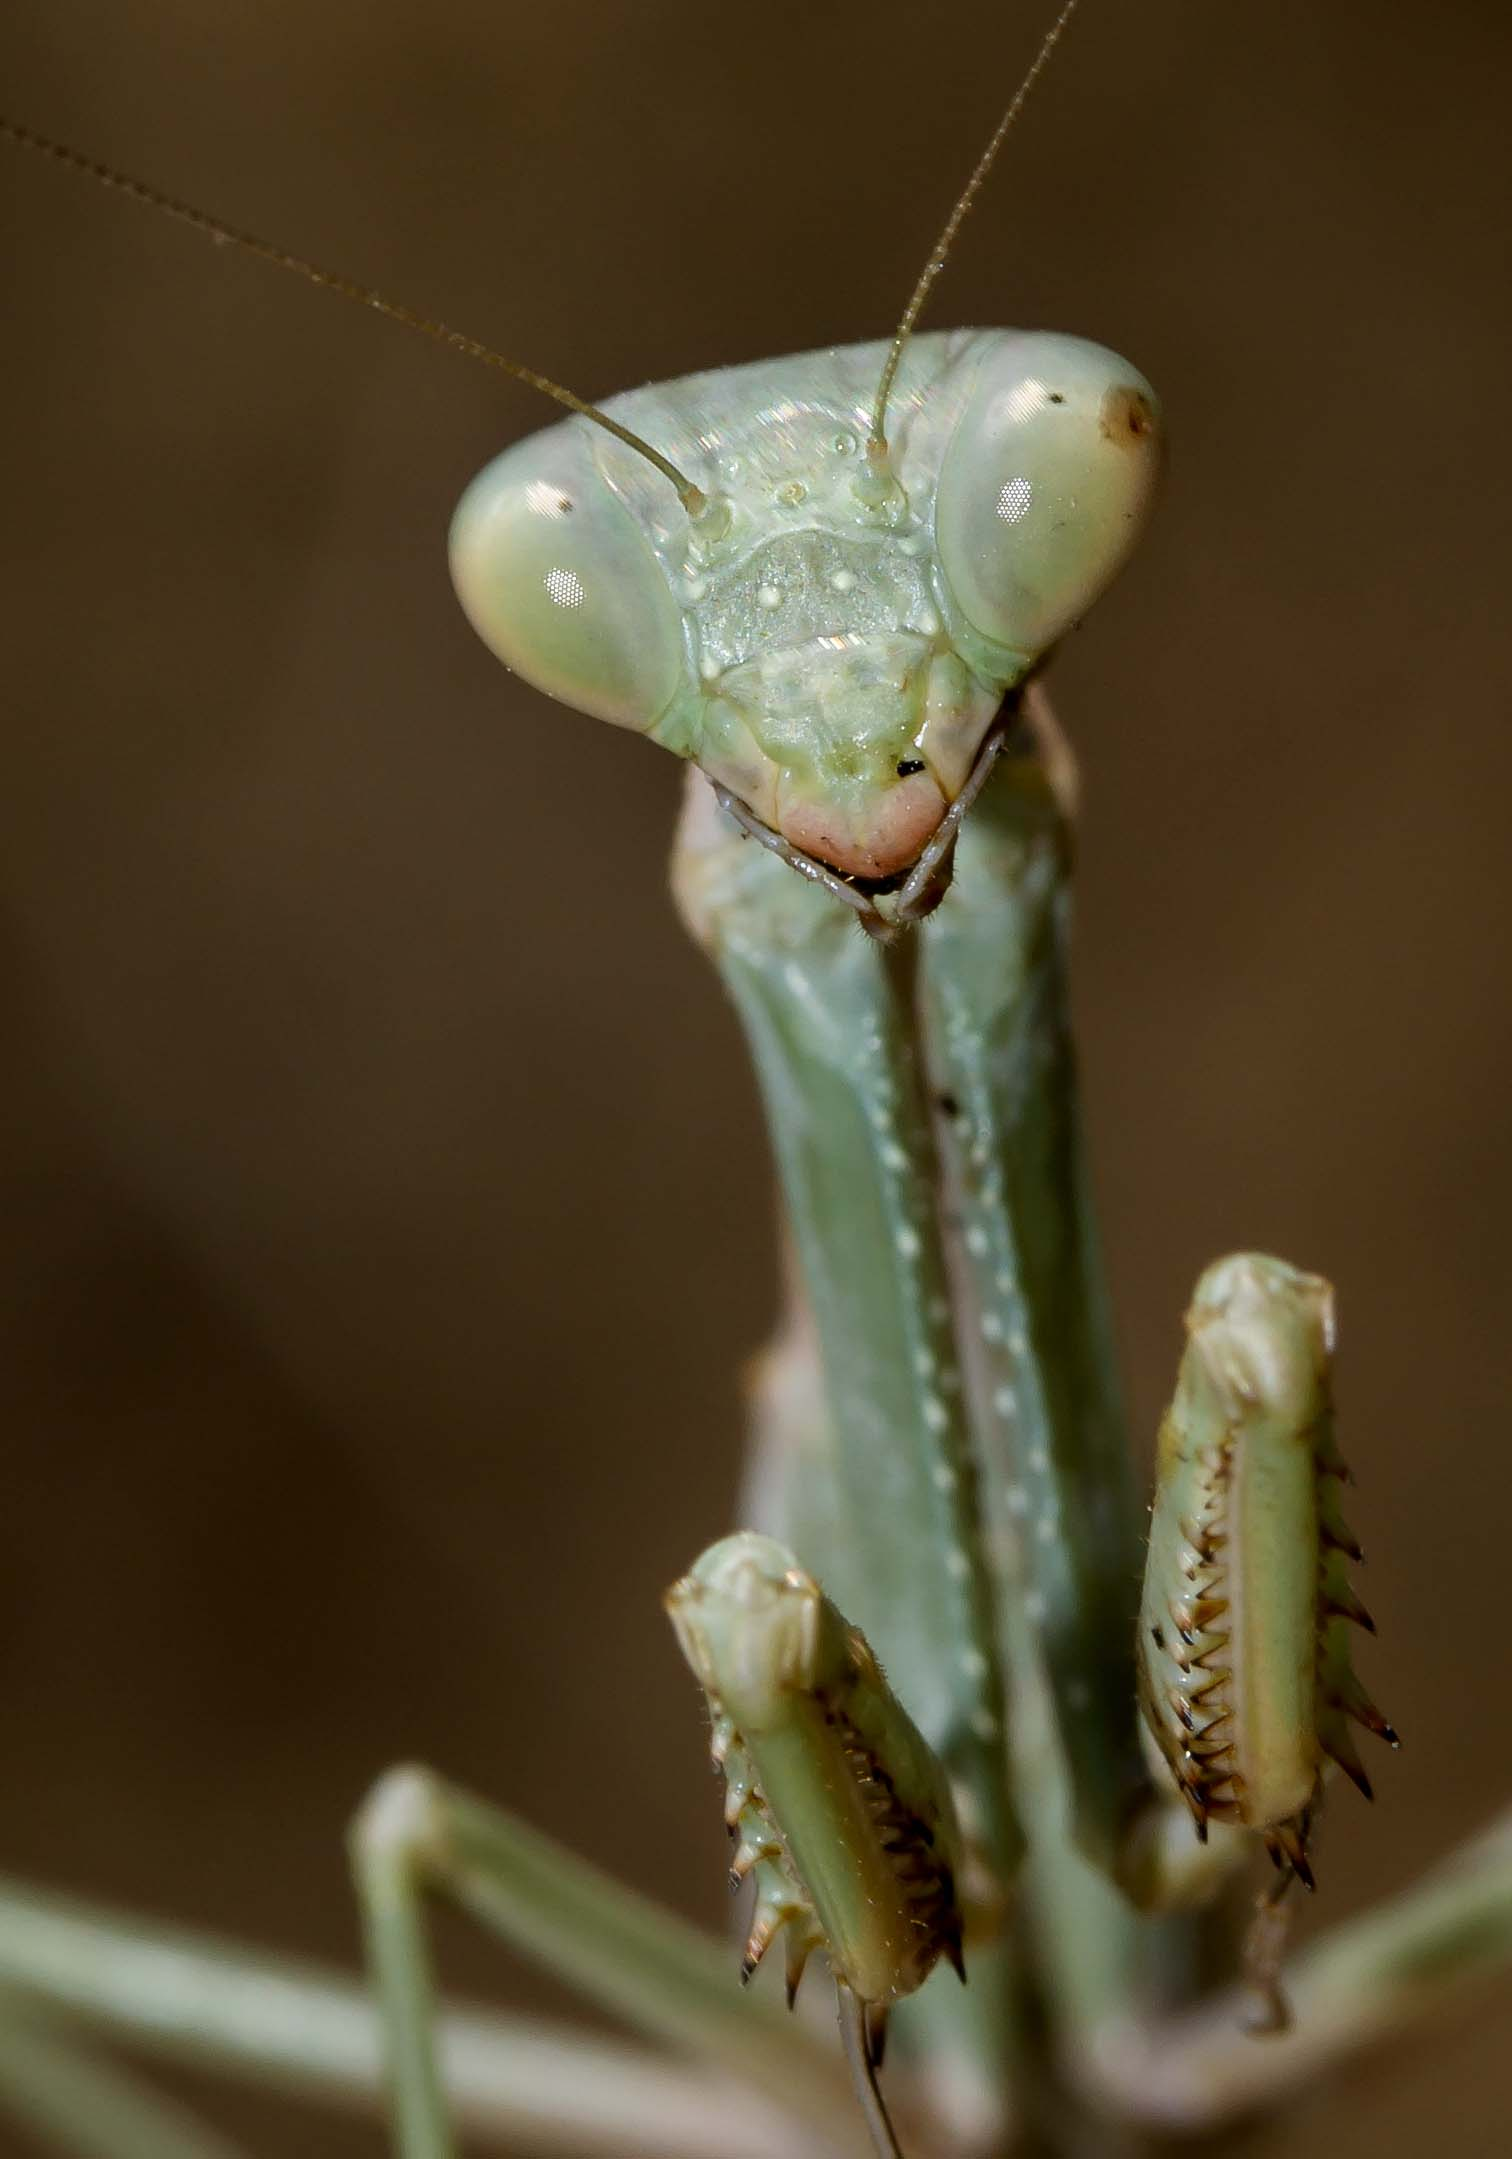 Iris oratoria - female - Naxos - Mantodea - Fangschrecken - praying mantises